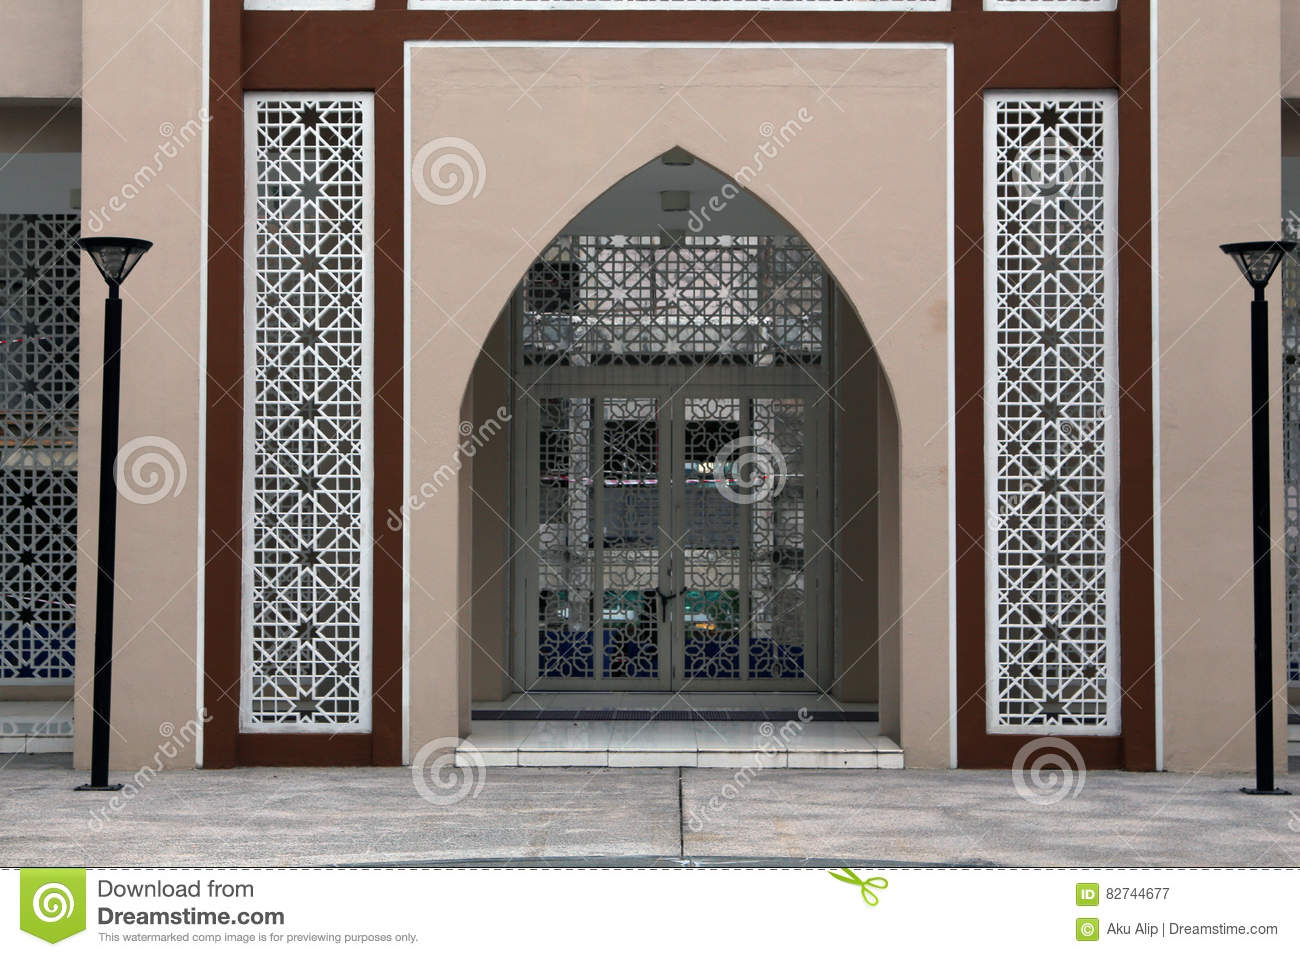 A mosque gate art stock image image of pattern detail for International decor main gates